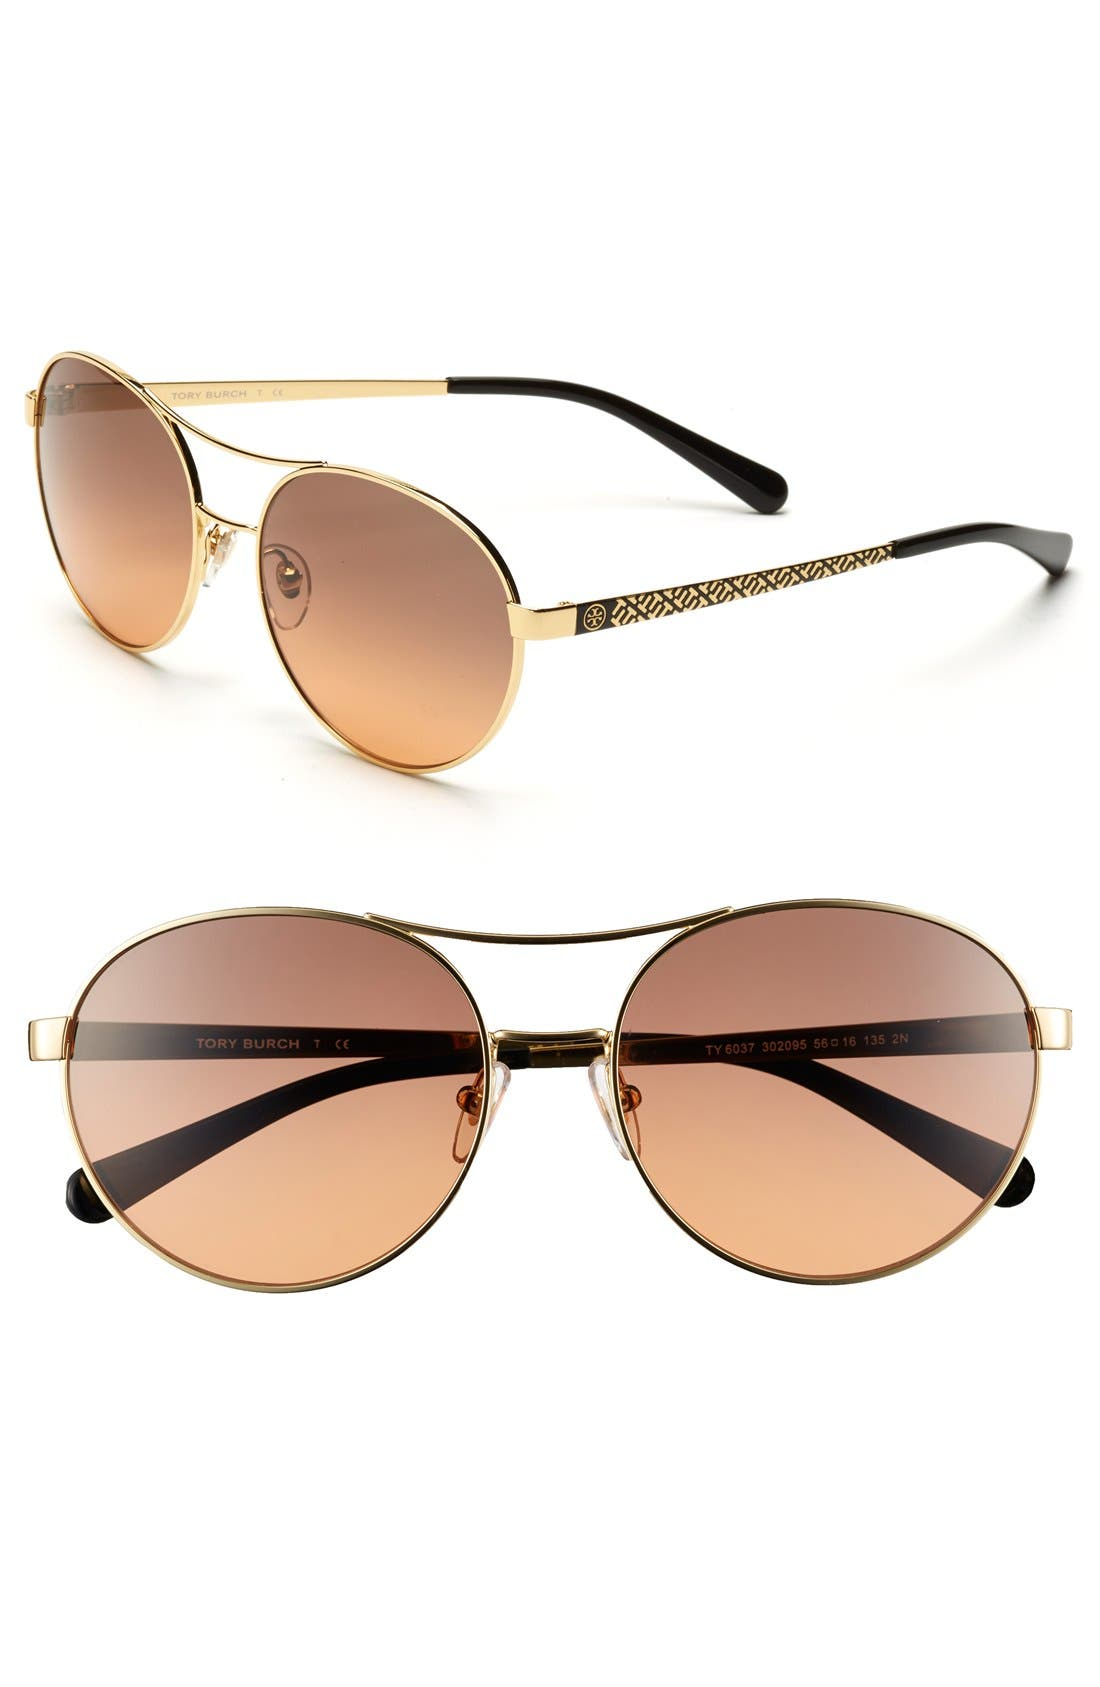 Alternate Image 1 Selected - Tory Burch Round 56mm Sunglasses